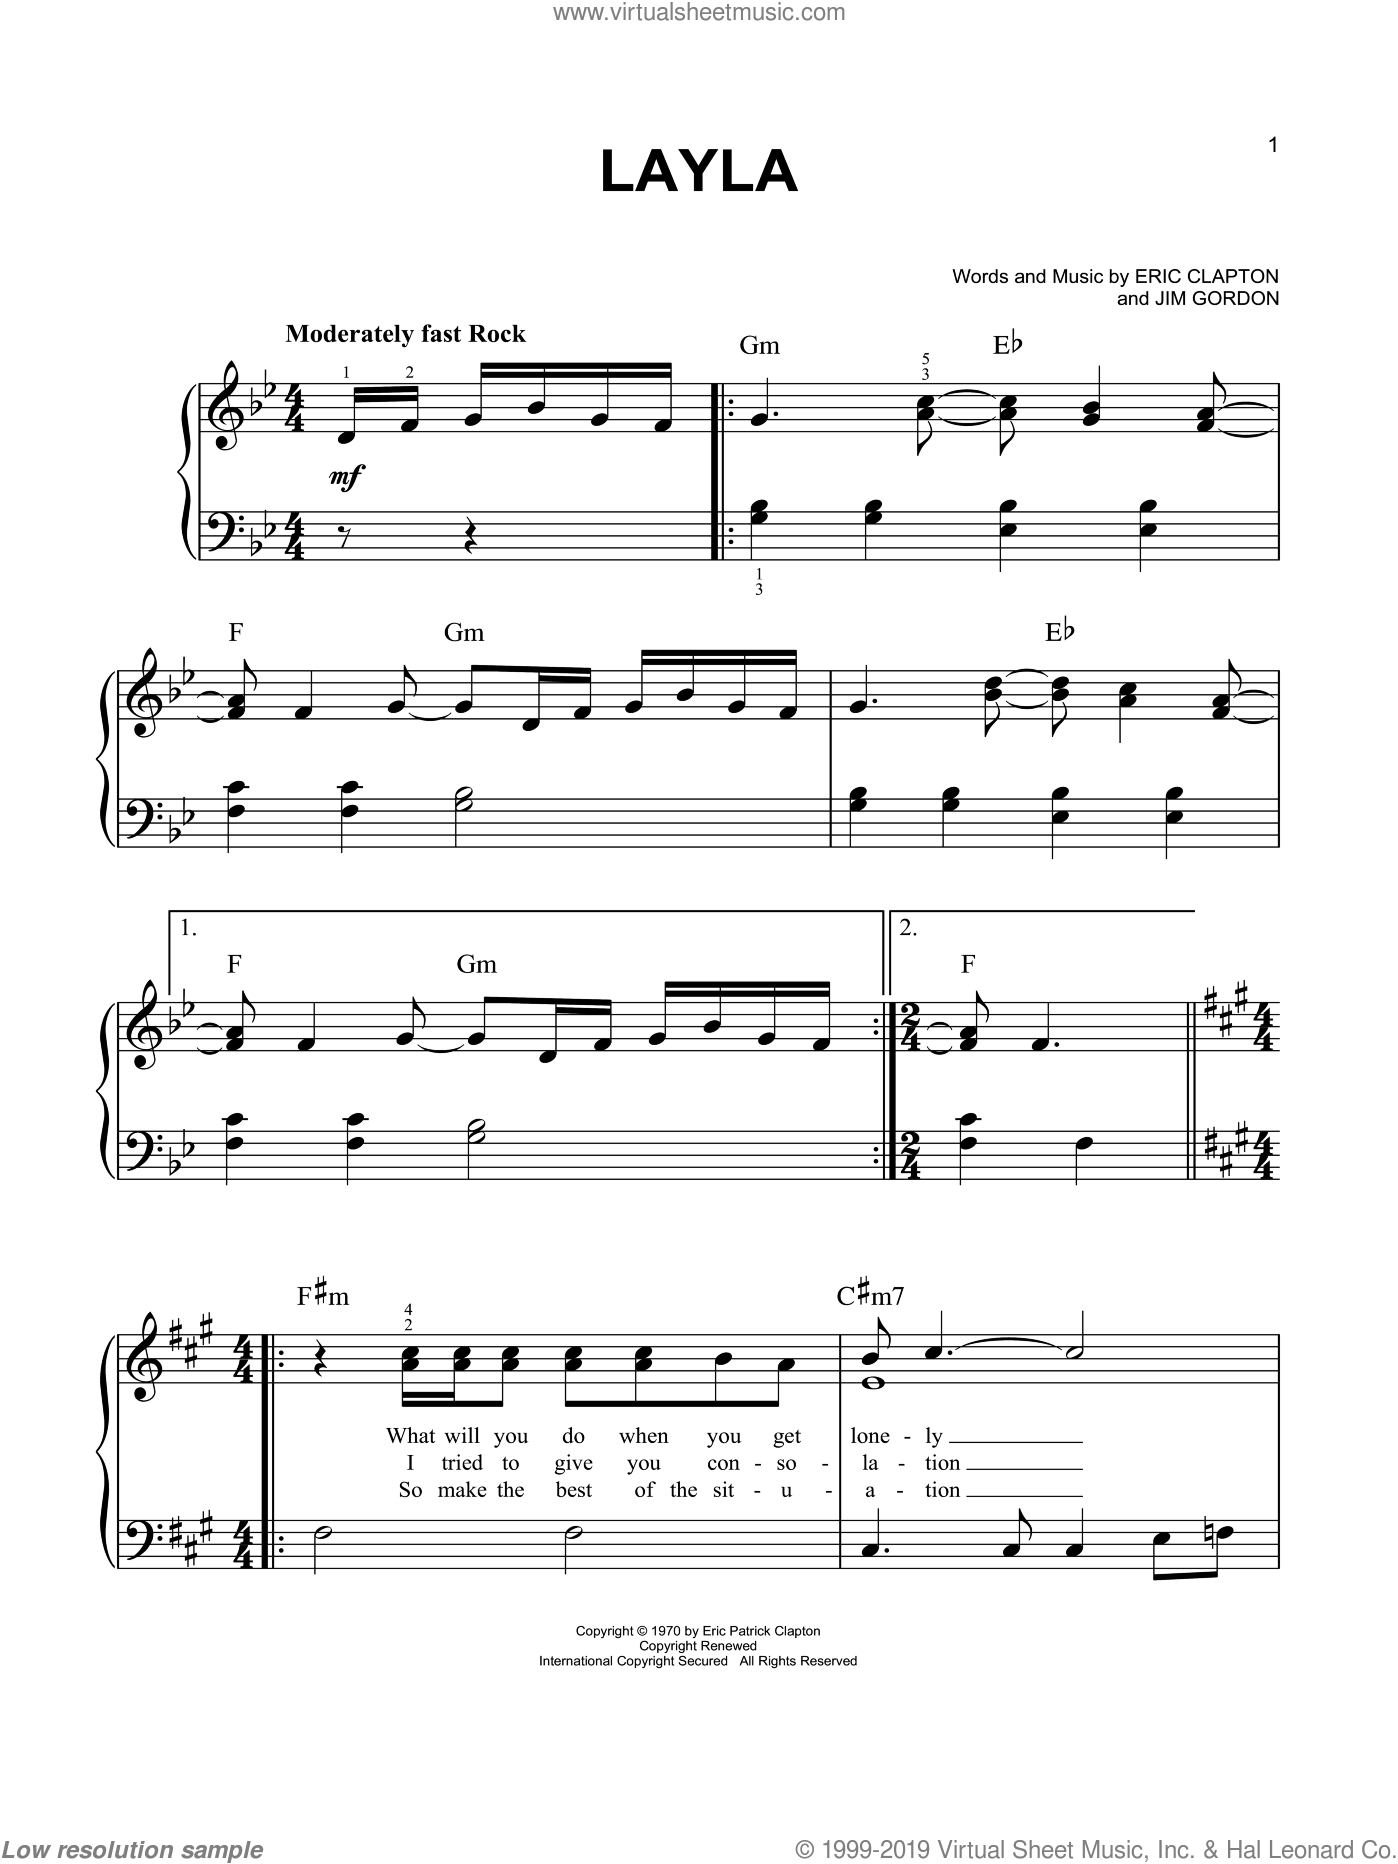 music_note Chords for LAYLA PIANO EXIT